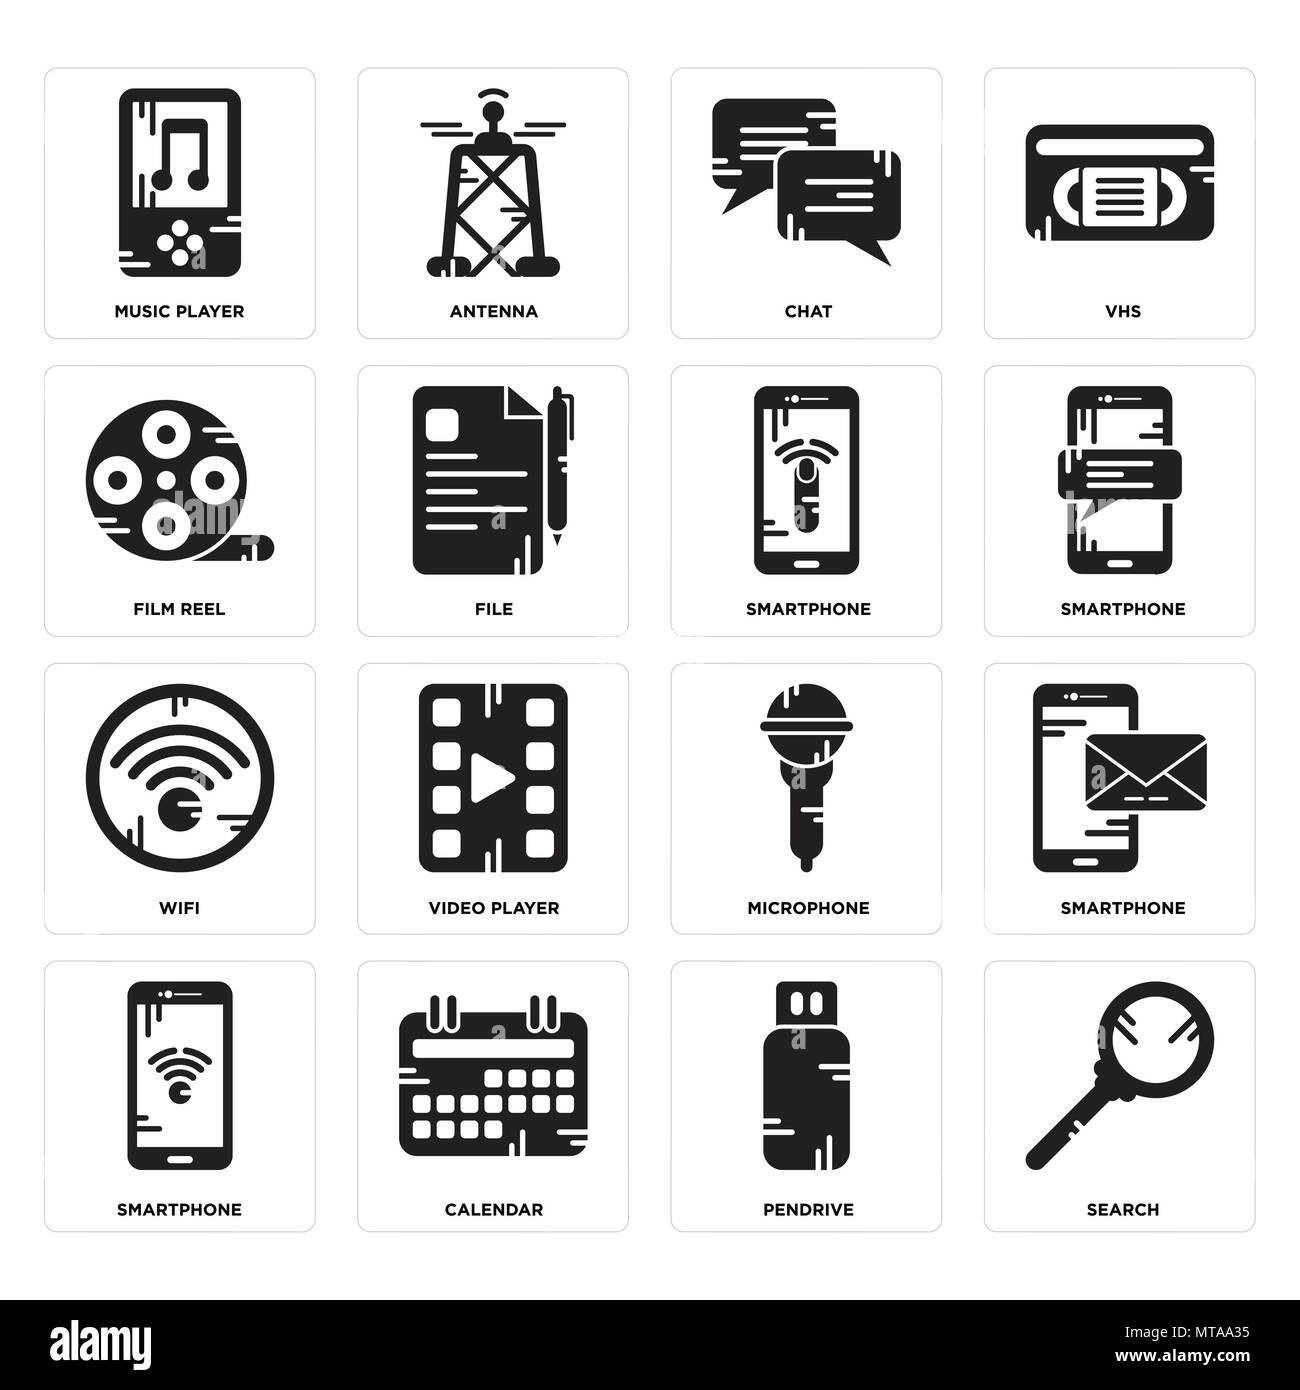 Set Of 16 simple editable icons such as Search, Pendrive, Calendar